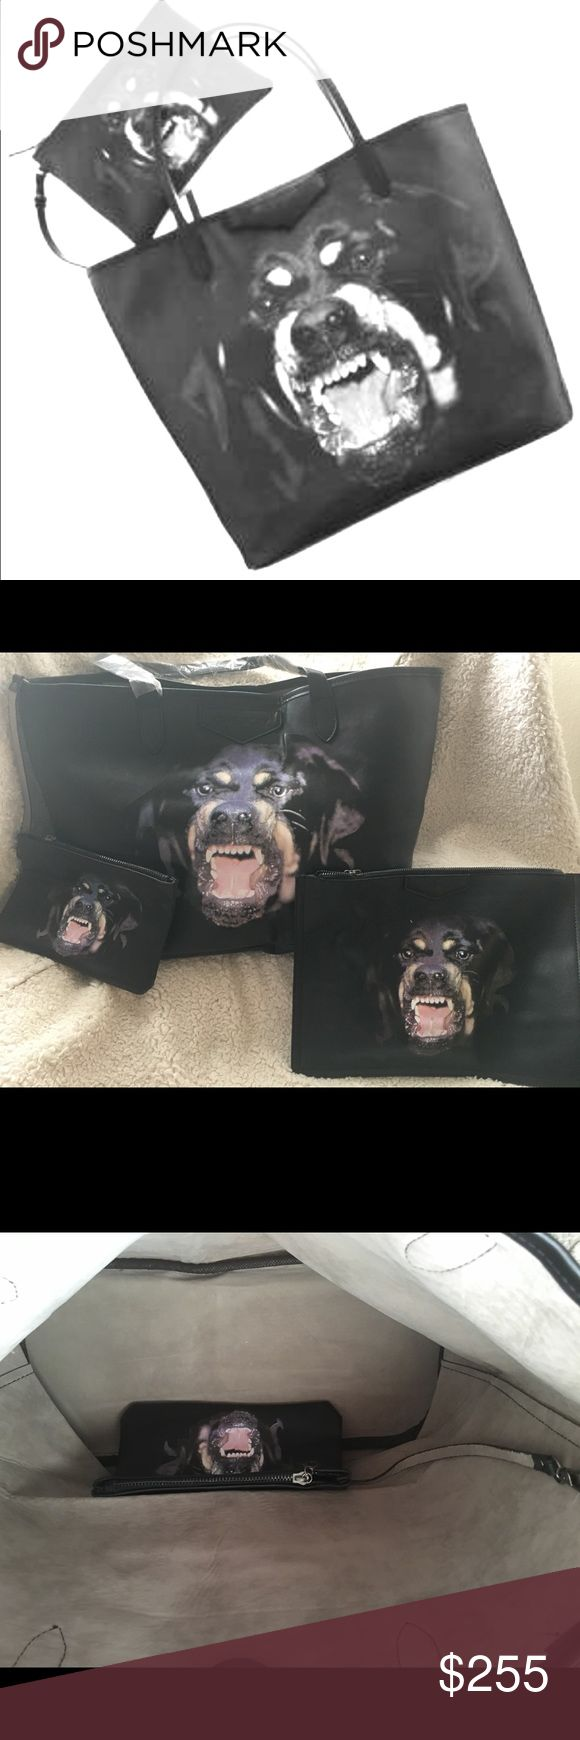 MAKE OFFERS 3 PIECES Rottweiler Bag New set of 3 handbags. Outside brand tag. Inside no brand. I think its the size of GM neverfull . I tool a pic beside a MM neverfull its smaller. Its very roomy. Come with small pouch and a clutch bag. Price reflects please its very obvious. Am open to offers message me. Its beautiful purse last 3 pics for reference of size. The LV not included.Part of sale is going to help pay bills of a family with cancer. Thanks Givenchy Bags Totes